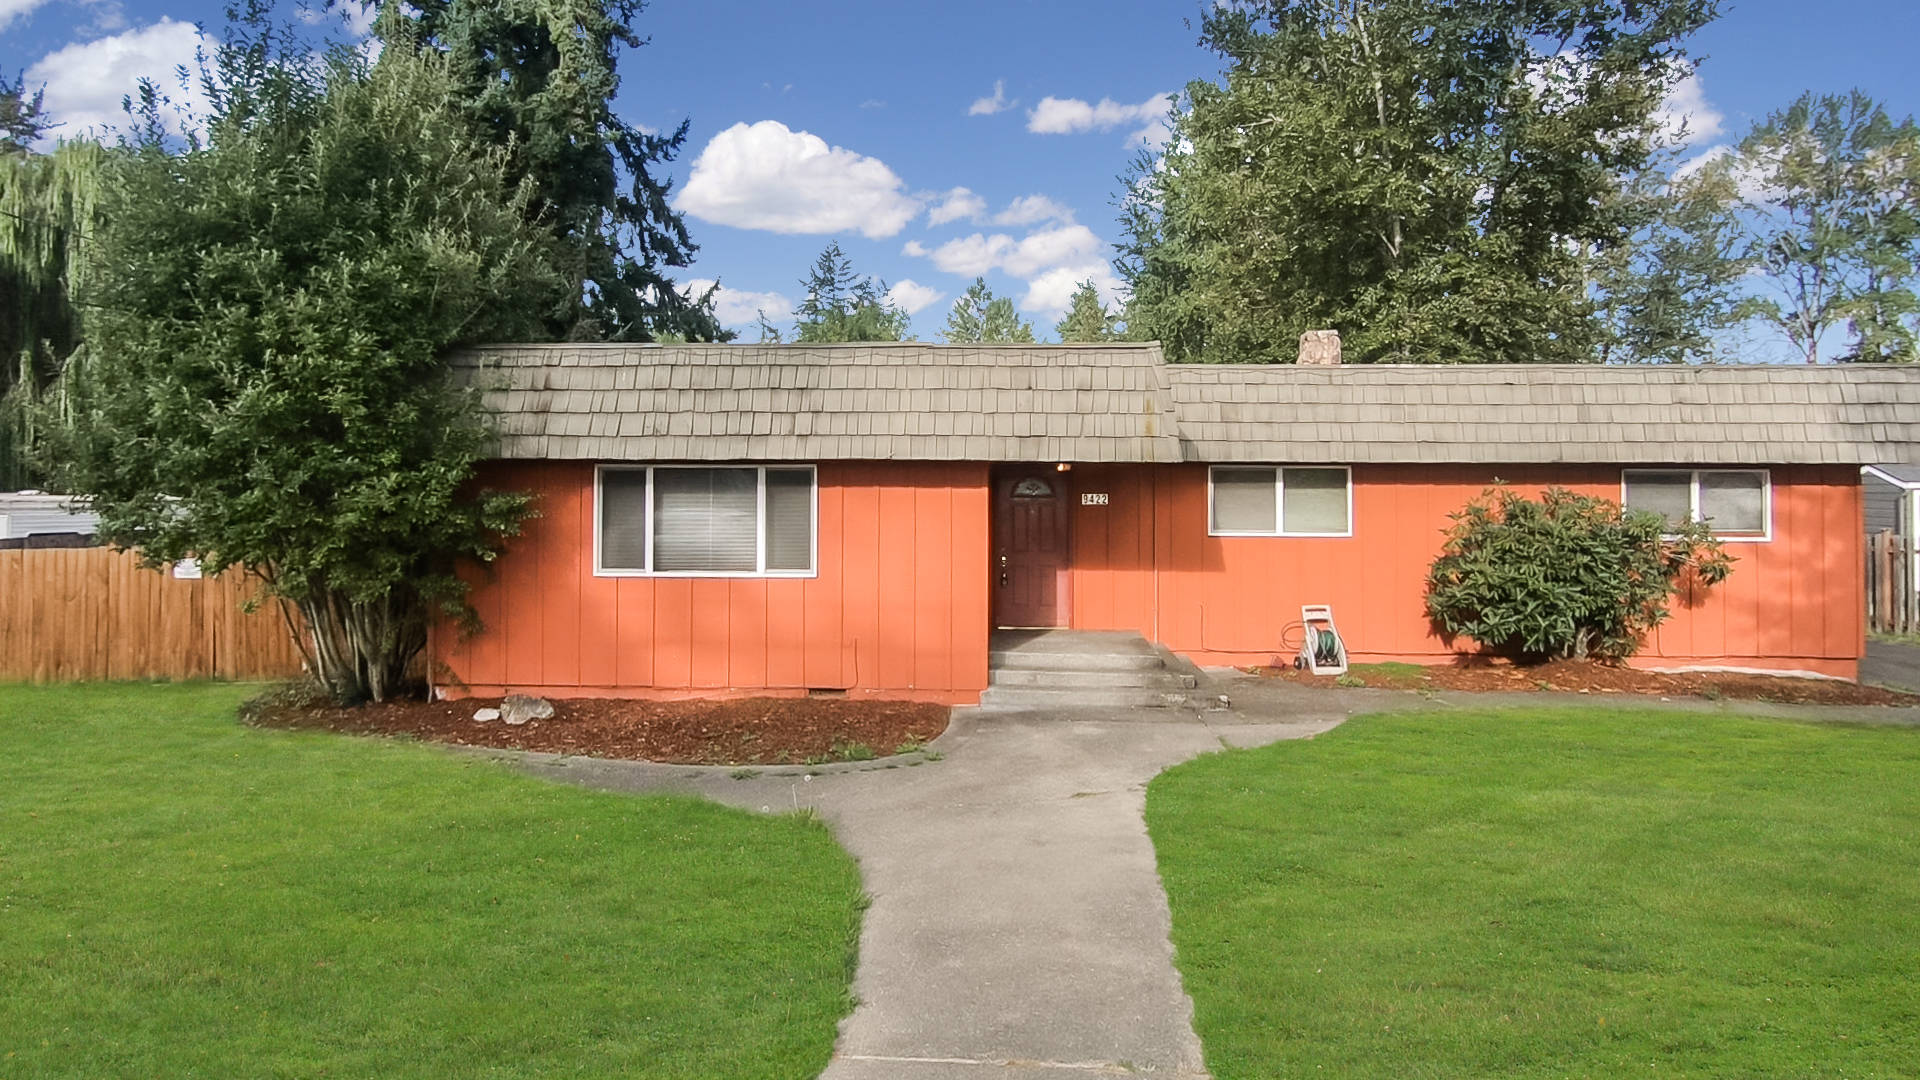 9422 - 24th Ave E Tacoma, WA 98445